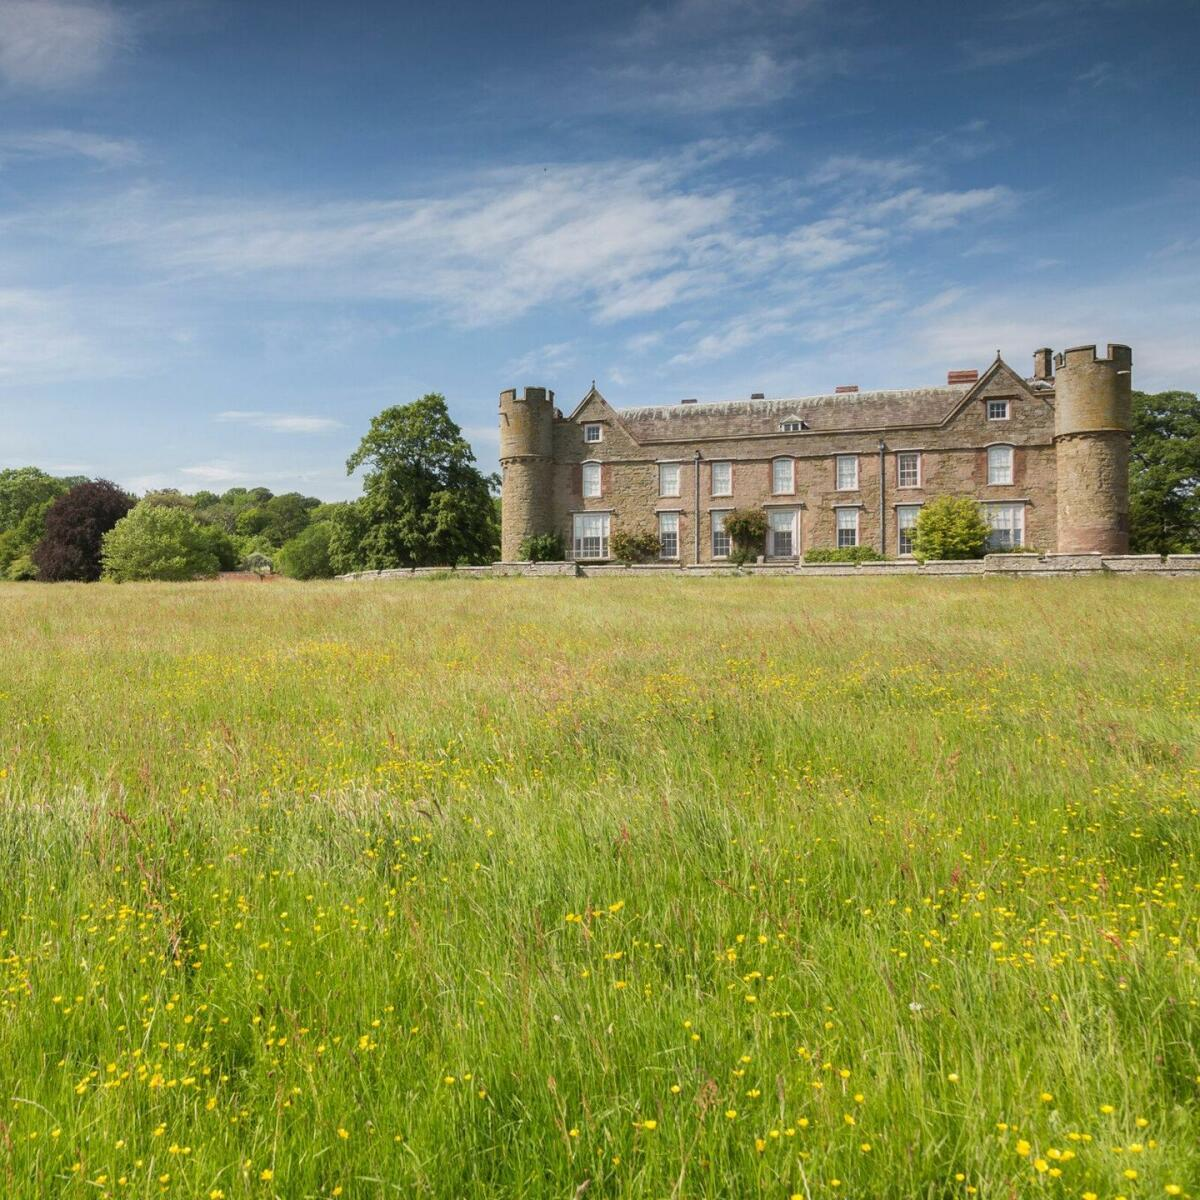 Buttercup meadow leading up to Croft castle